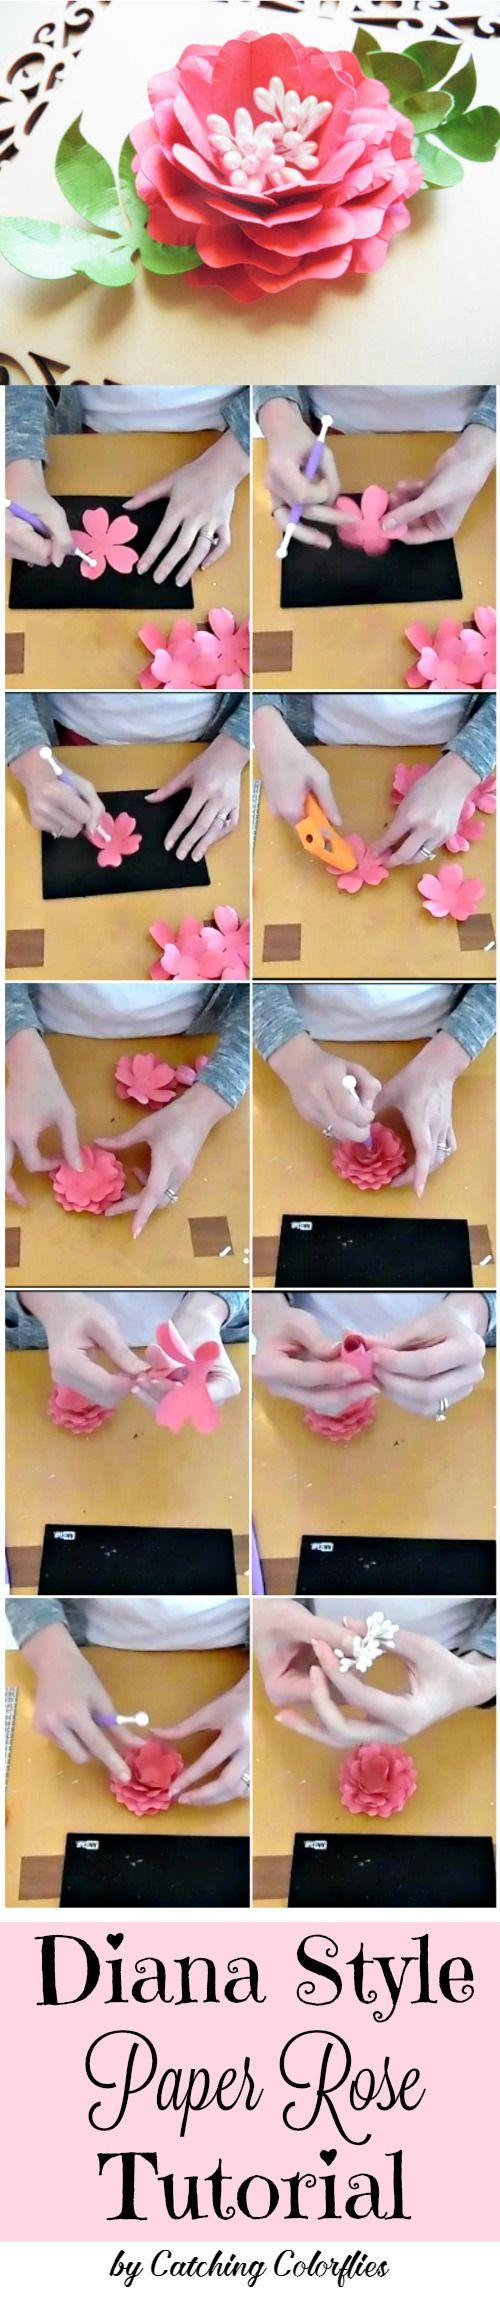 How to make paper roses.  DIY Paper Rose Templates- Paper flower patterns- Instant download paper flower rose templates- SVG cut files